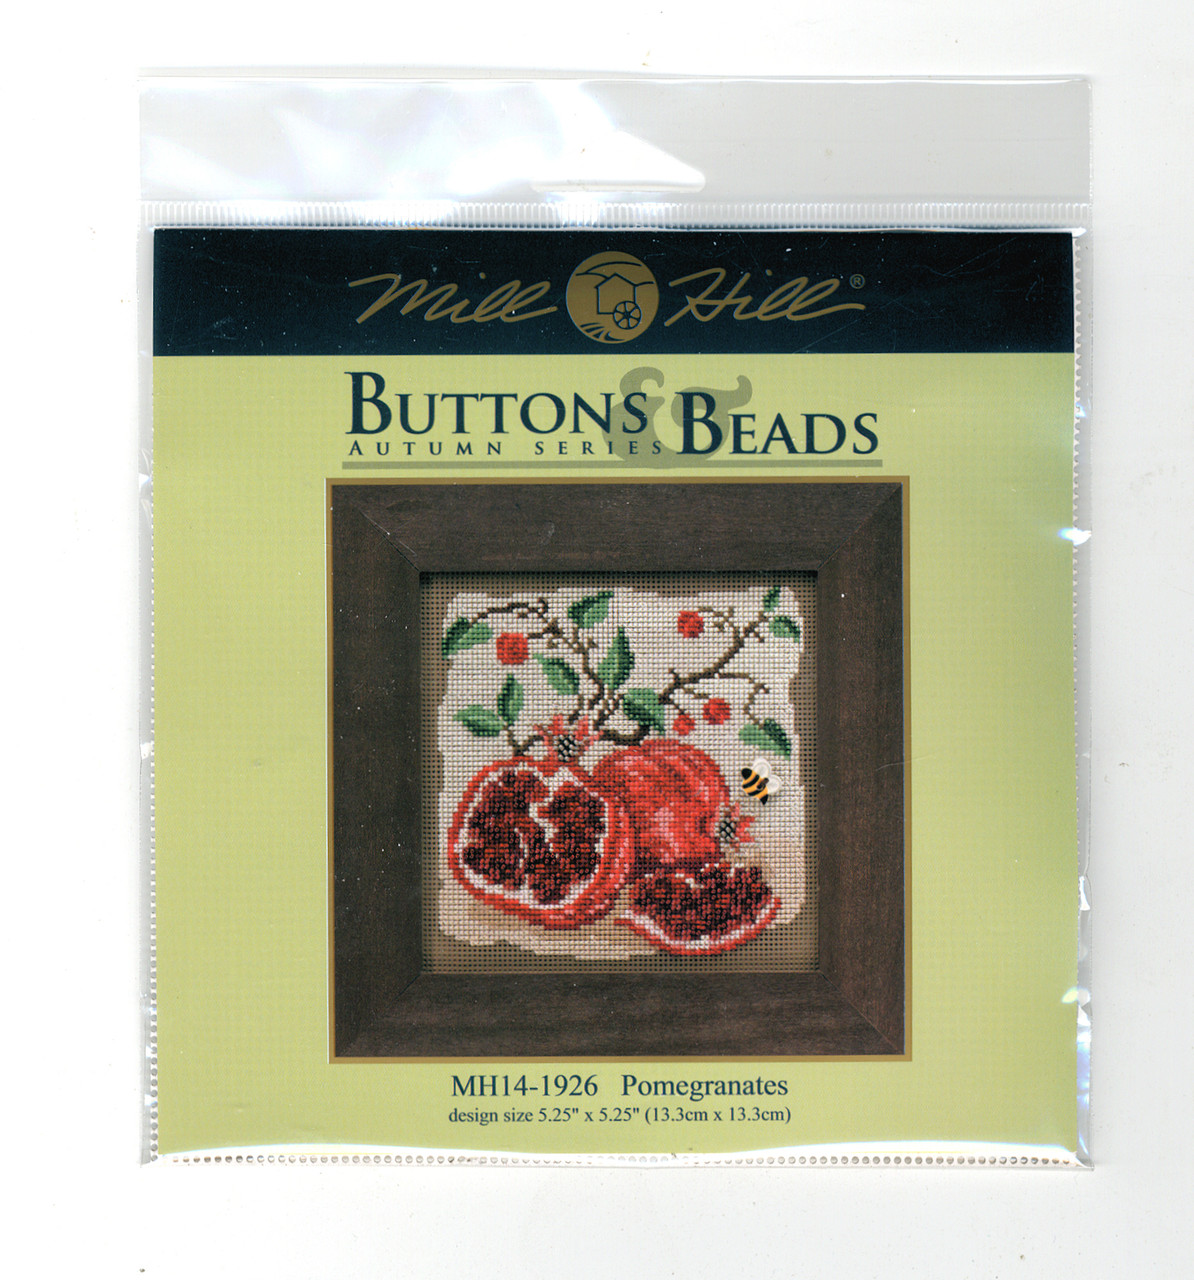 2019 Mill Hill Buttons & Beads Autumn Series Set (6 Kits)